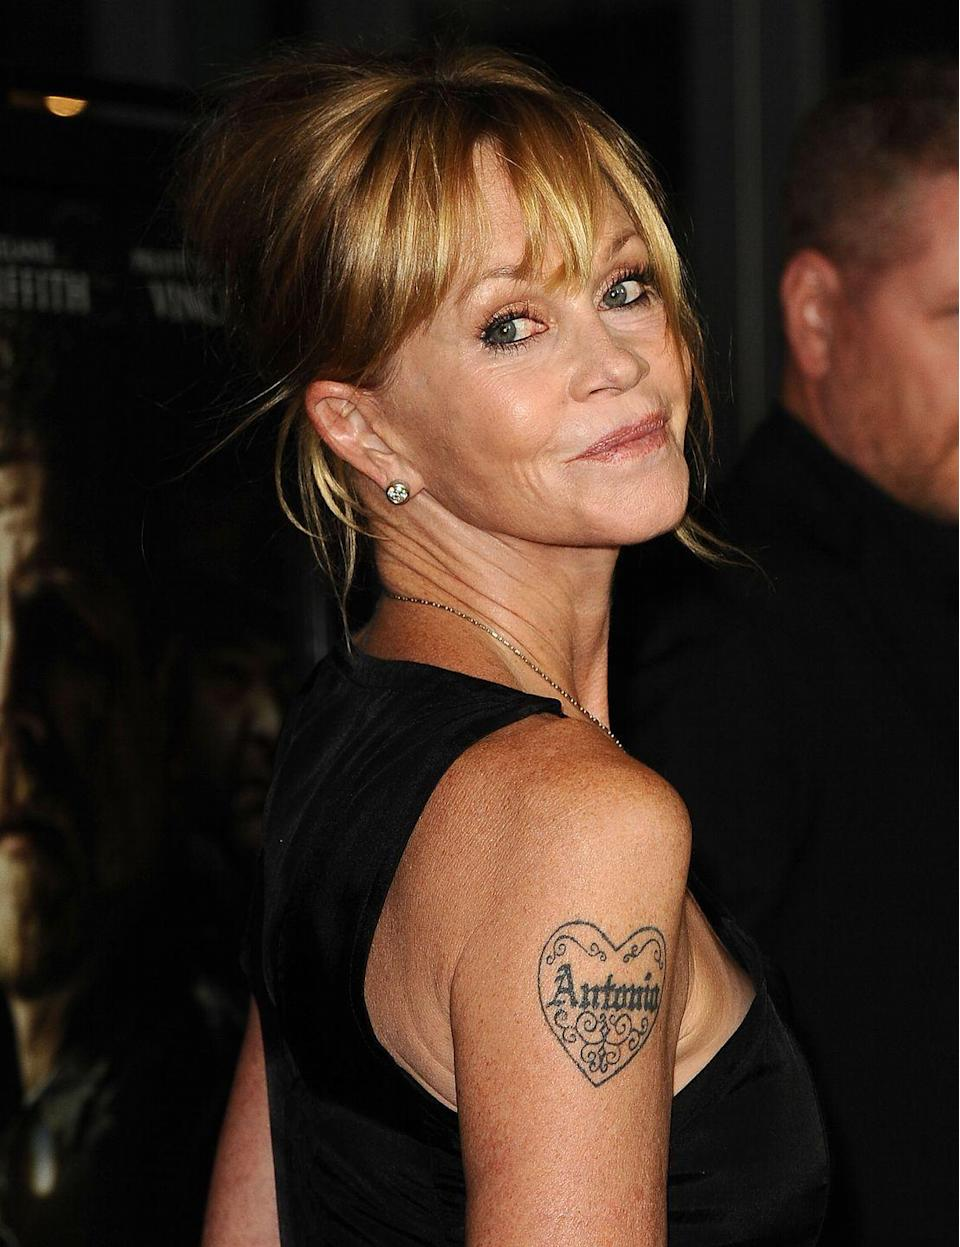 """<p>Melanie Griffith and Antonio Banderas were married for 19 years - which is basically forever in Hollywood years. But fans knew the couple was really over when Melanie appeared on the red carpet with the tattoo of his name on her arm partially covered. At first, the actress used makeup to erase Antonio's name, but the <em><a href=""""https://www.dailymail.co.uk/tvshowbiz/article-3163471/Melanie-Griffith-57-looks-stunning-summery-dress-shows-gone-Antonio-love-heart-tattoo.html"""" rel=""""nofollow noopener"""" target=""""_blank"""" data-ylk=""""slk:Daily Mail"""" class=""""link rapid-noclick-resp"""">Daily Mail</a></em> reports she eventually made the decision to have the ink permanently removed. <br></p>"""